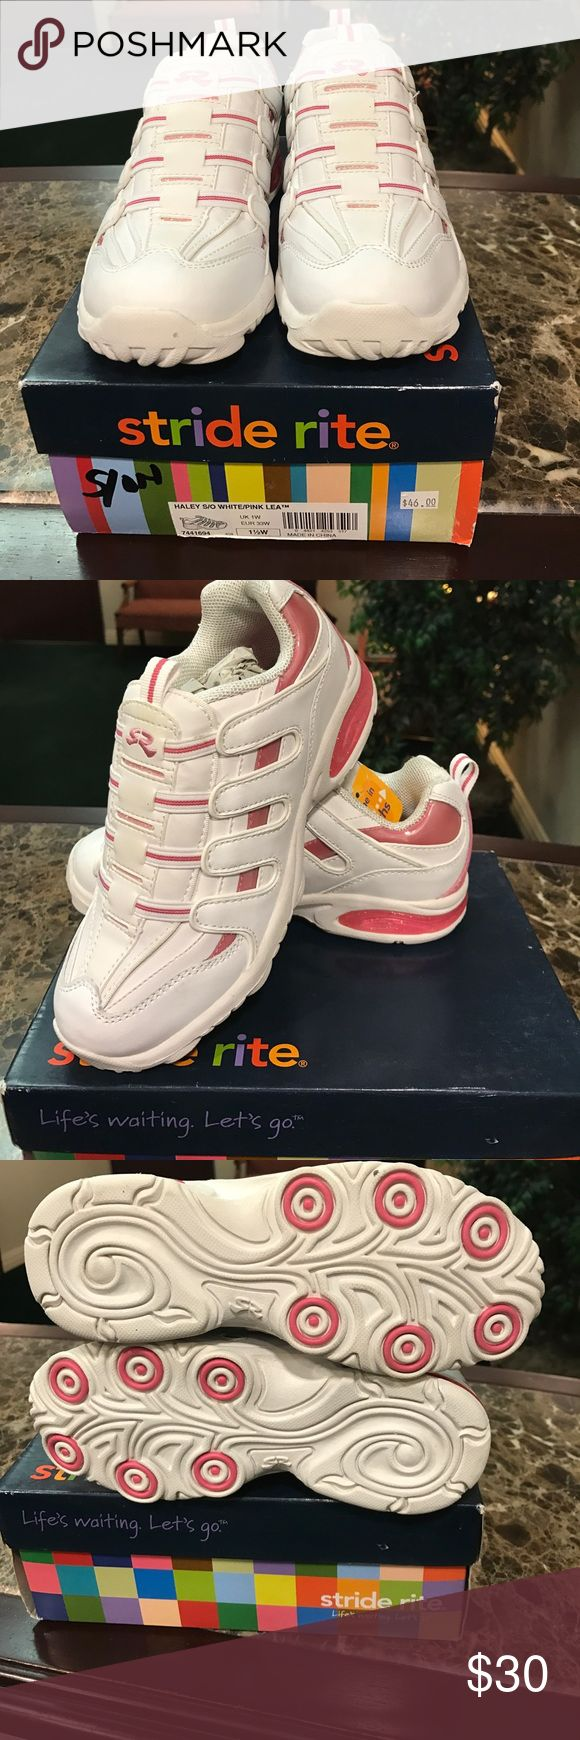 Girls Stride Rite white & pink sneakers brand new Haley Stride Rite Girls slip on white/pink leather sneakers - brand new with box size 1.5W Stride Rite Shoes Sneakers